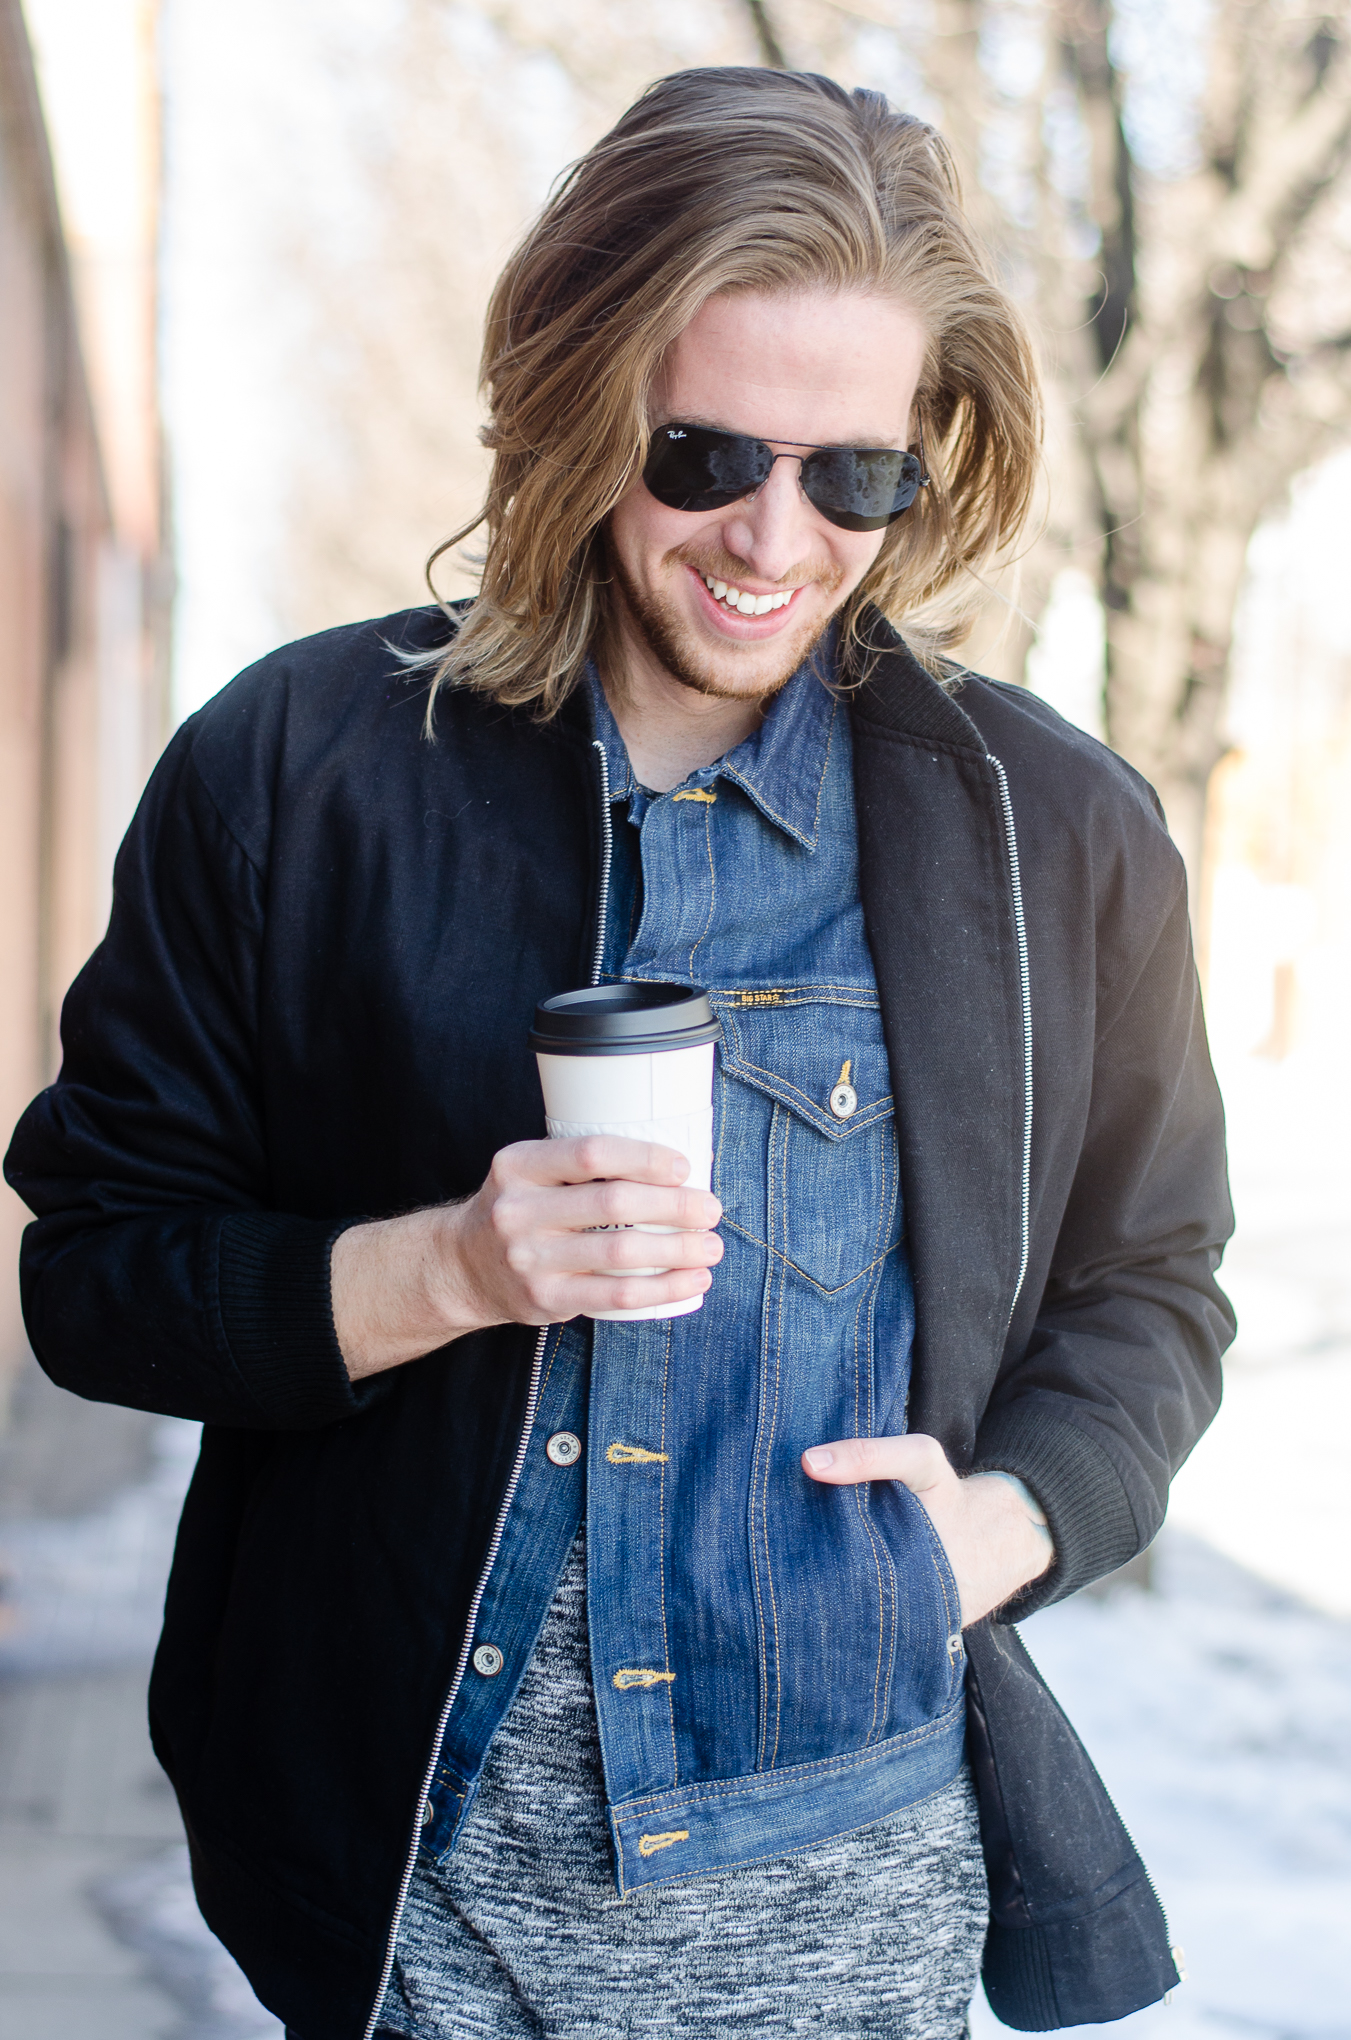 The Kentucky Gent, a men's fashion and lifestyle blogger, whips his hair back and forth.